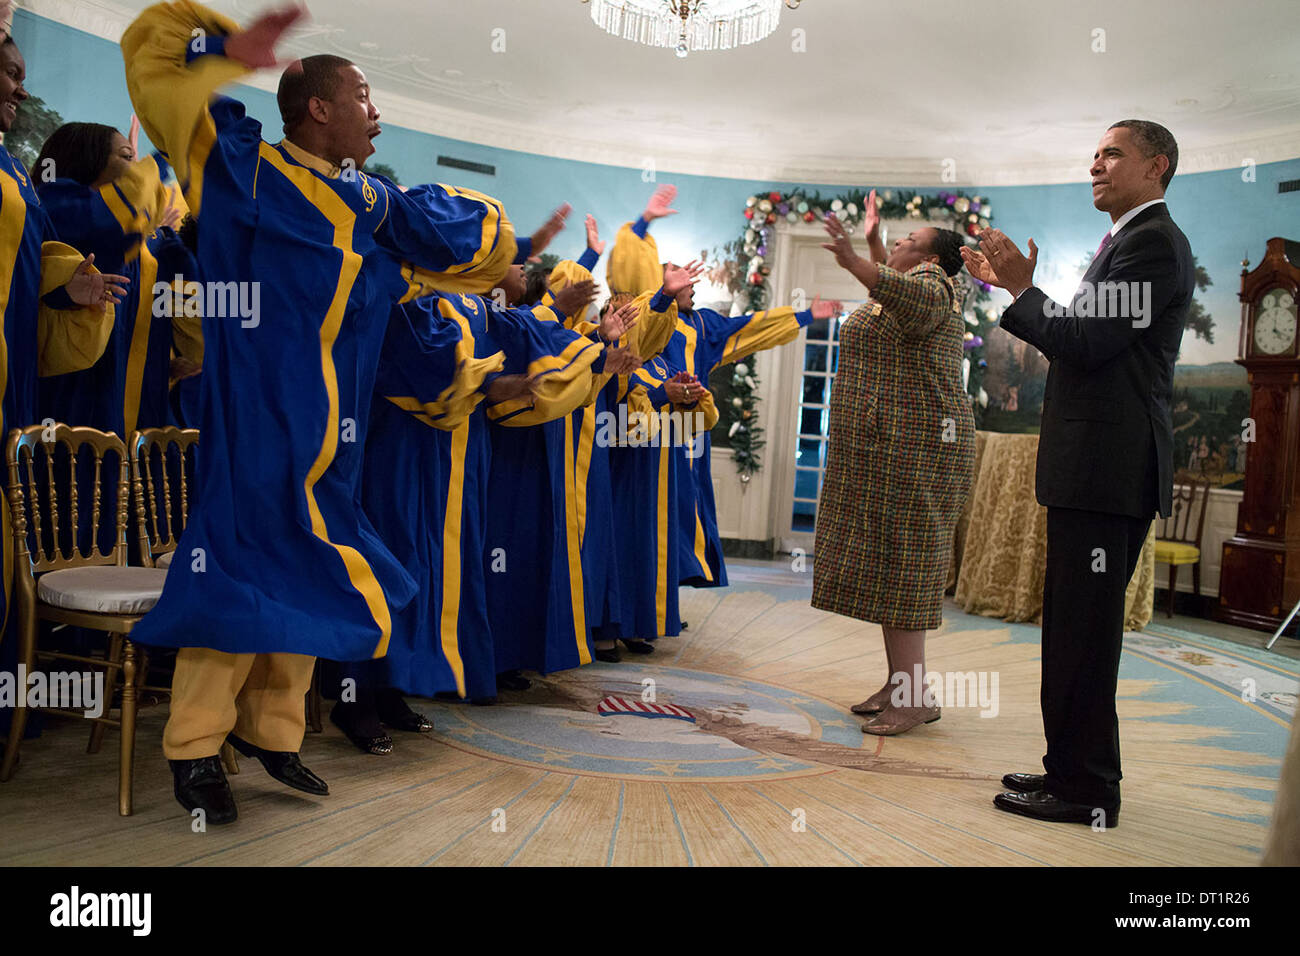 US President Barack Obama listens to the Crenshaw Elite Choir perform in the Diplomatic Reception Room of the White House following a Christmas holiday reception December 11, 2013 in Washington, DC. - Stock Image